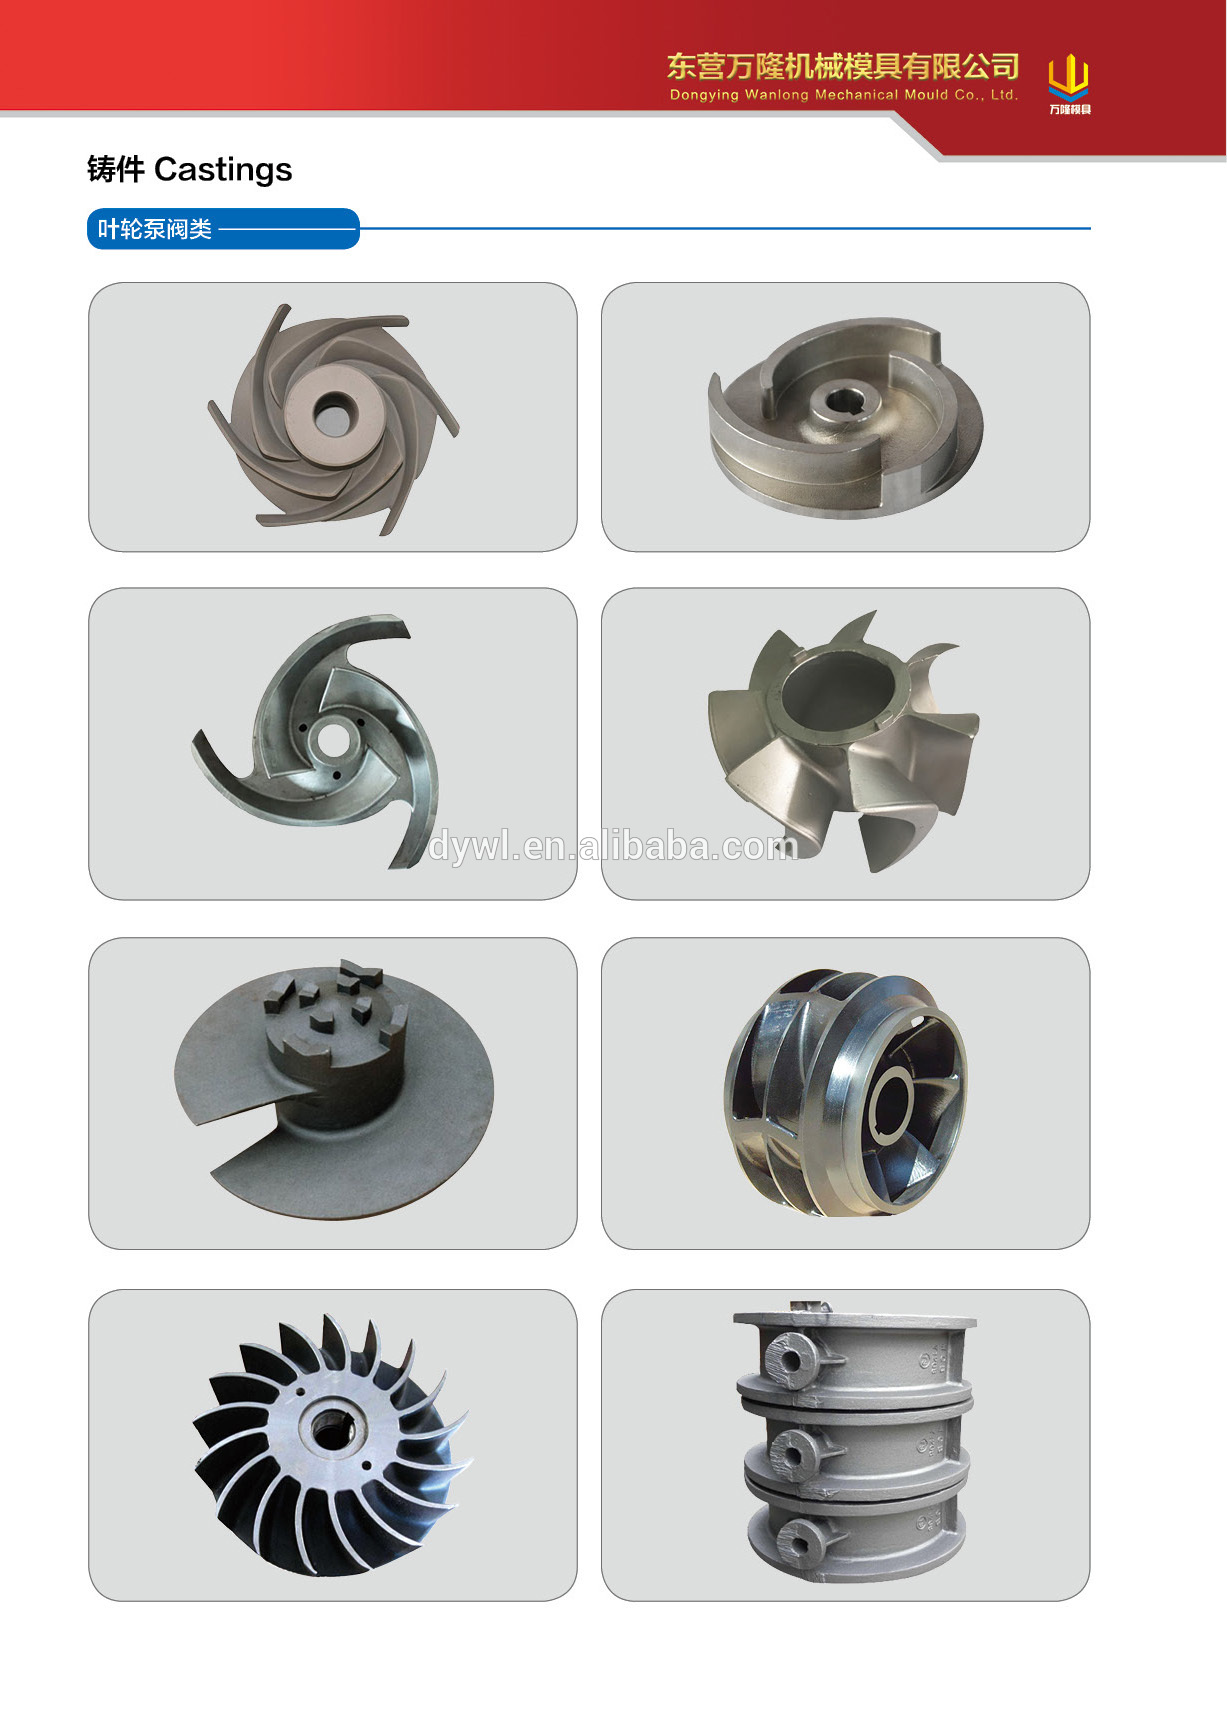 investment casting cnc machining pump impeller mold mould China foundry